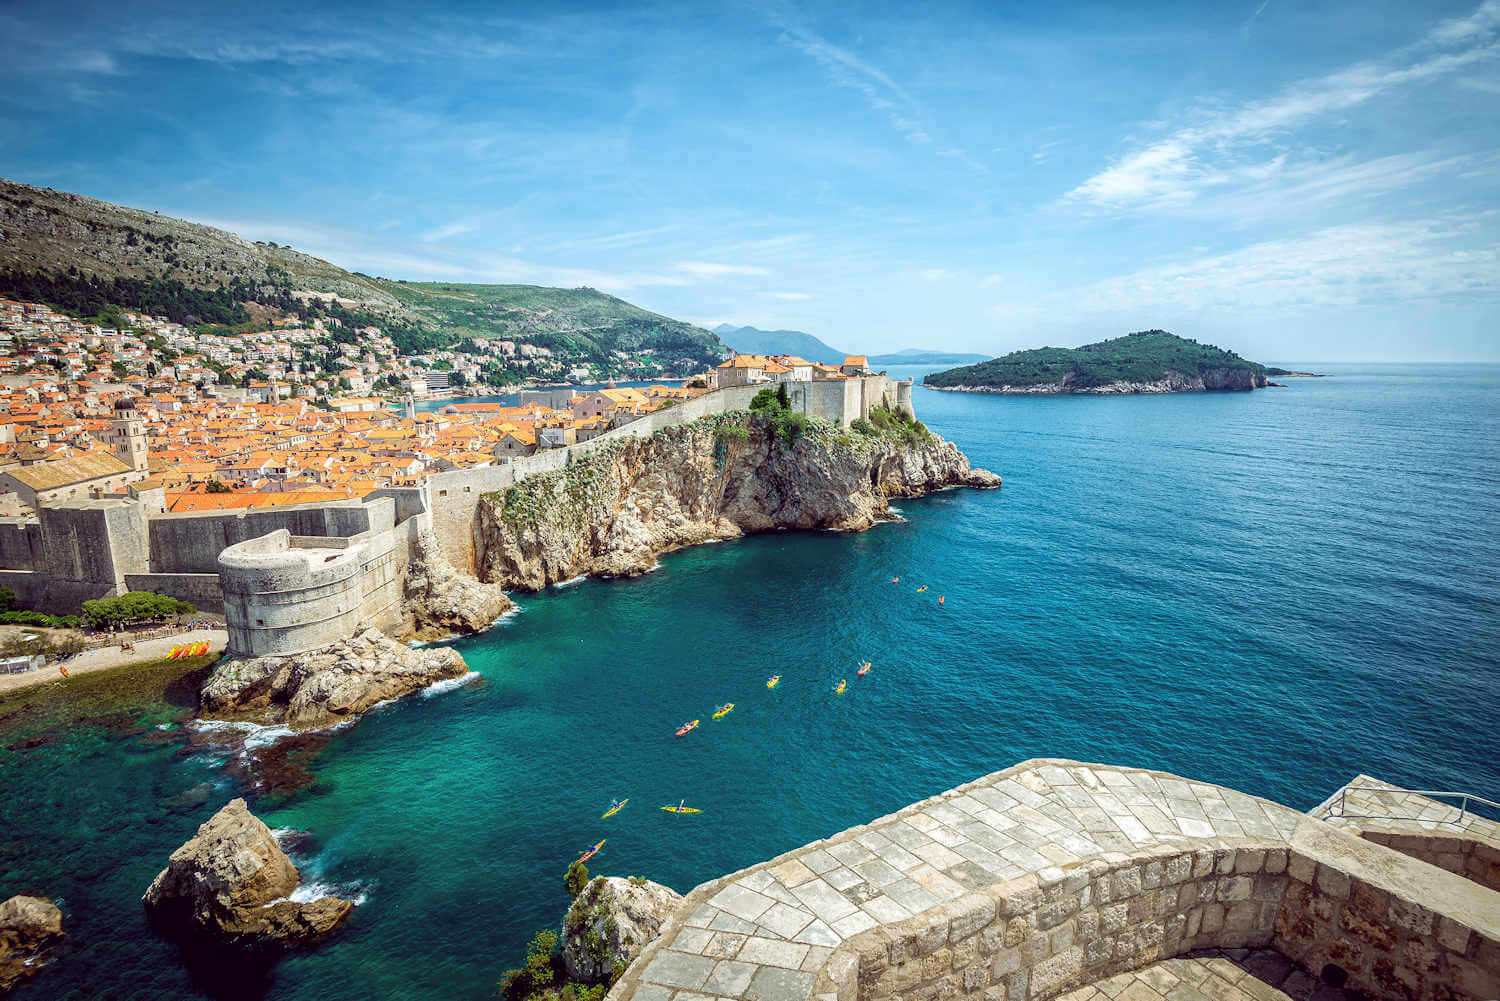 kayak is a great thing to do in dubrovnik